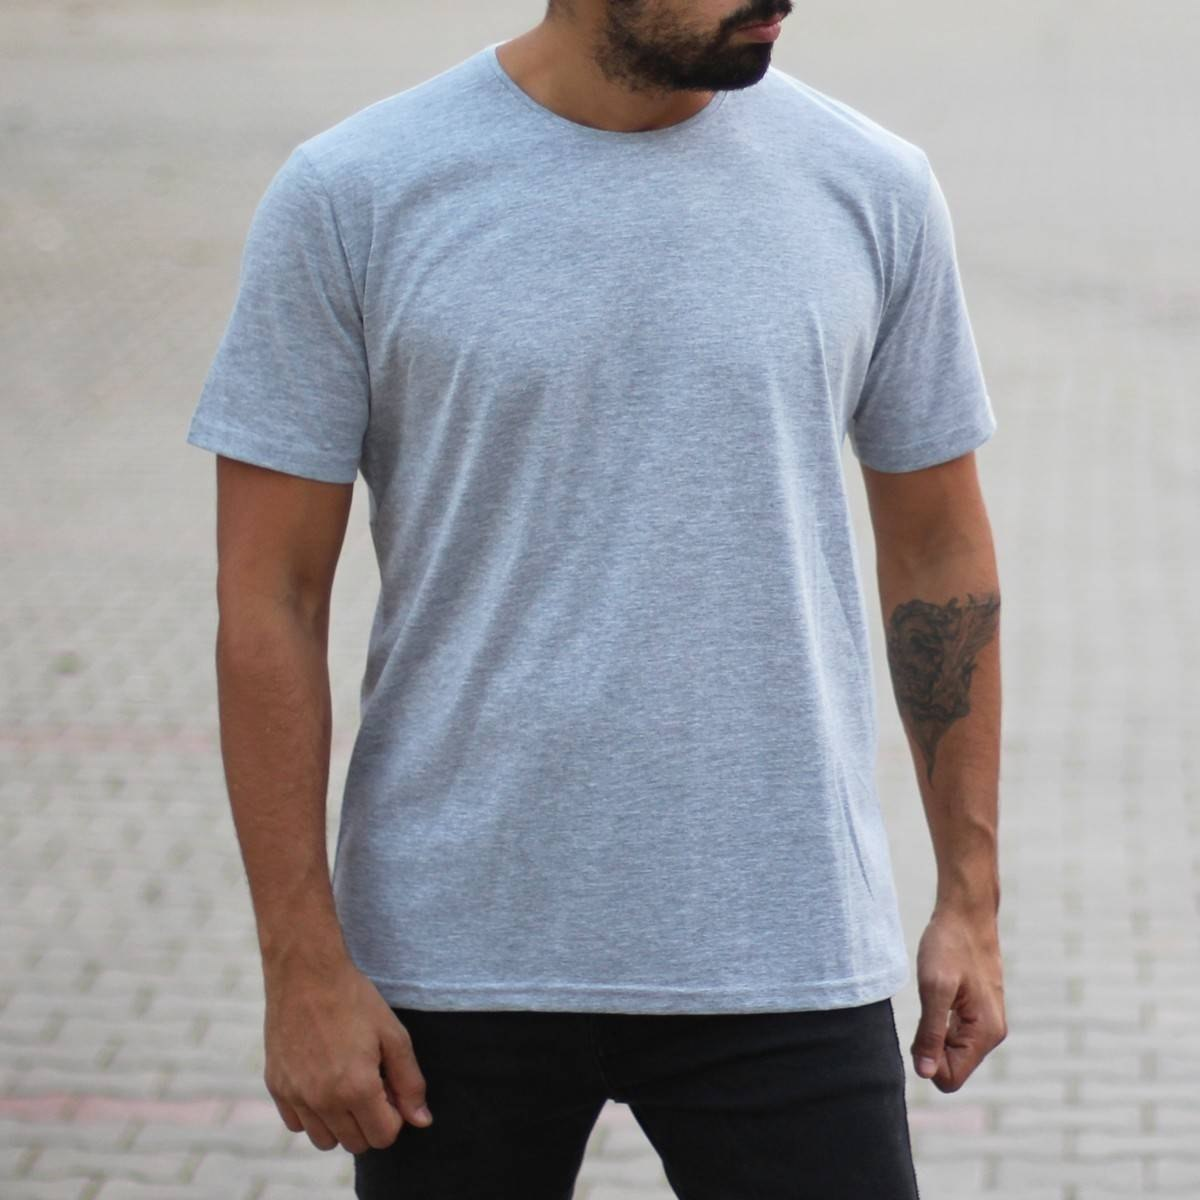 Men's Oversized Basic T-Shirt Gray Mv Premium Brand - 1